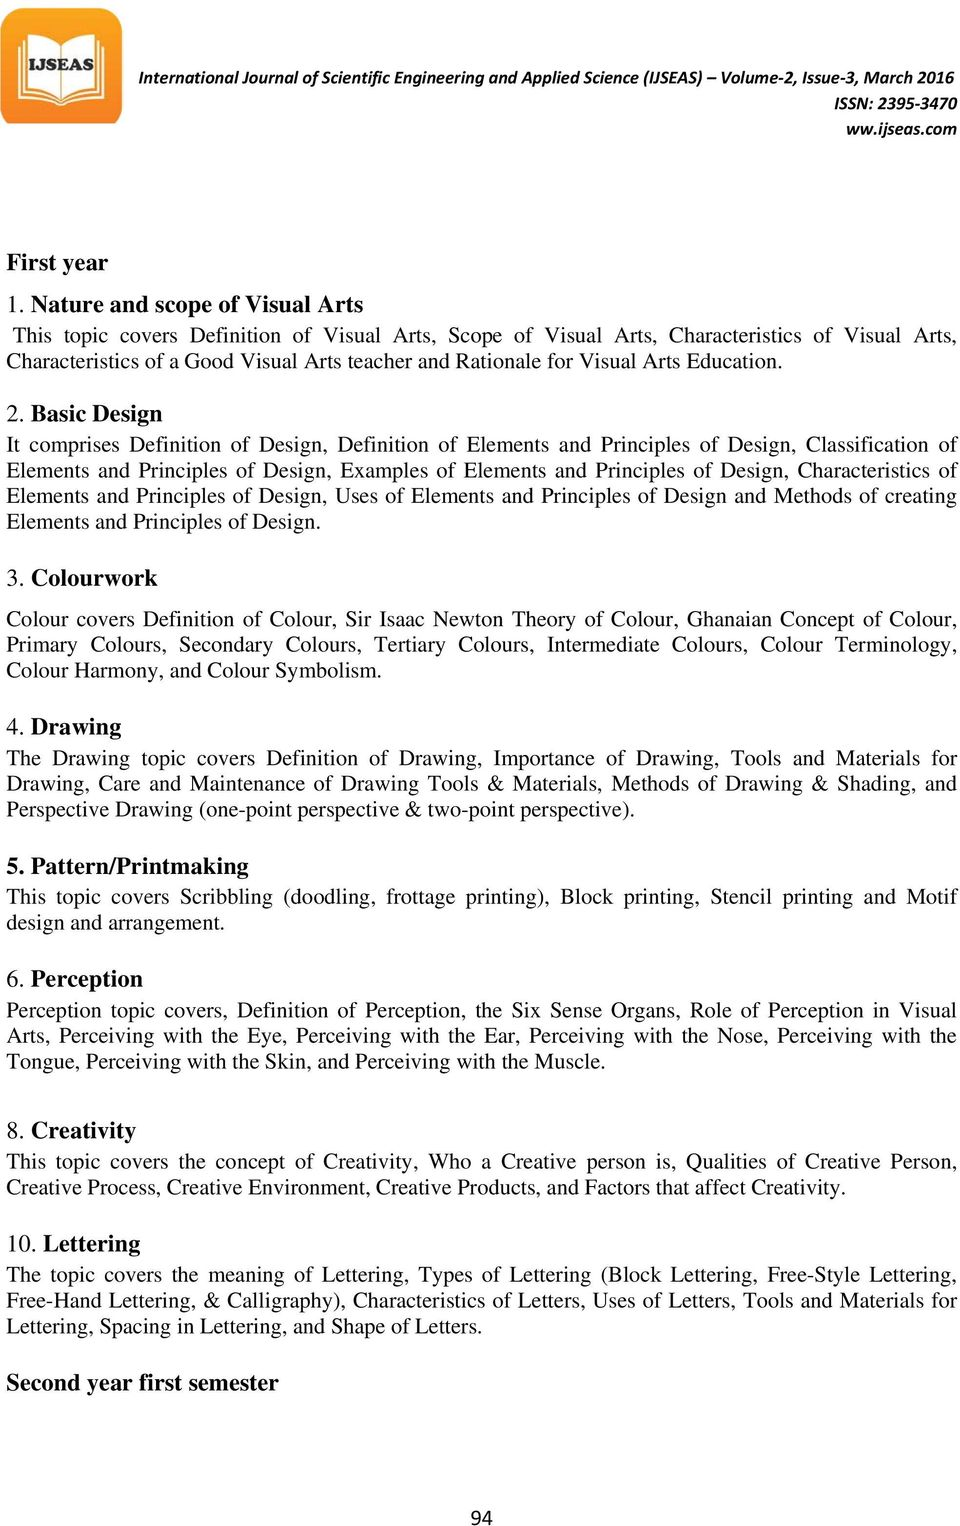 images?q=tbn:ANd9GcQh_l3eQ5xwiPy07kGEXjmjgmBKBRB7H2mRxCGhv1tFWg5c_mWT Ideas For Visual Arts Meaning And Examples @koolgadgetz.com.info